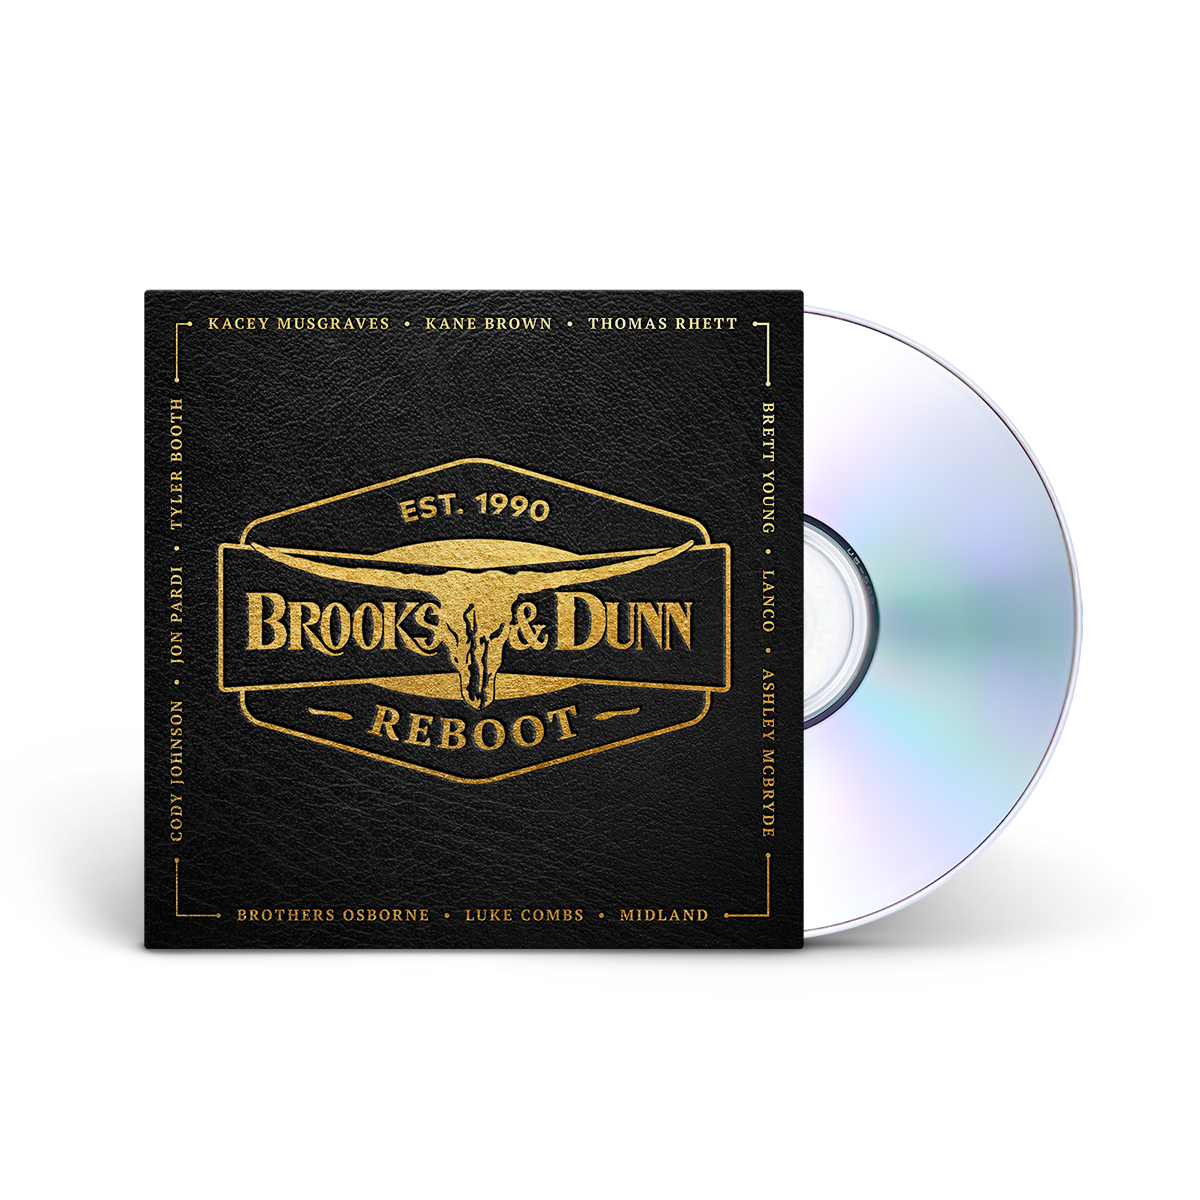 Brooks & Dunn - Reboot CD